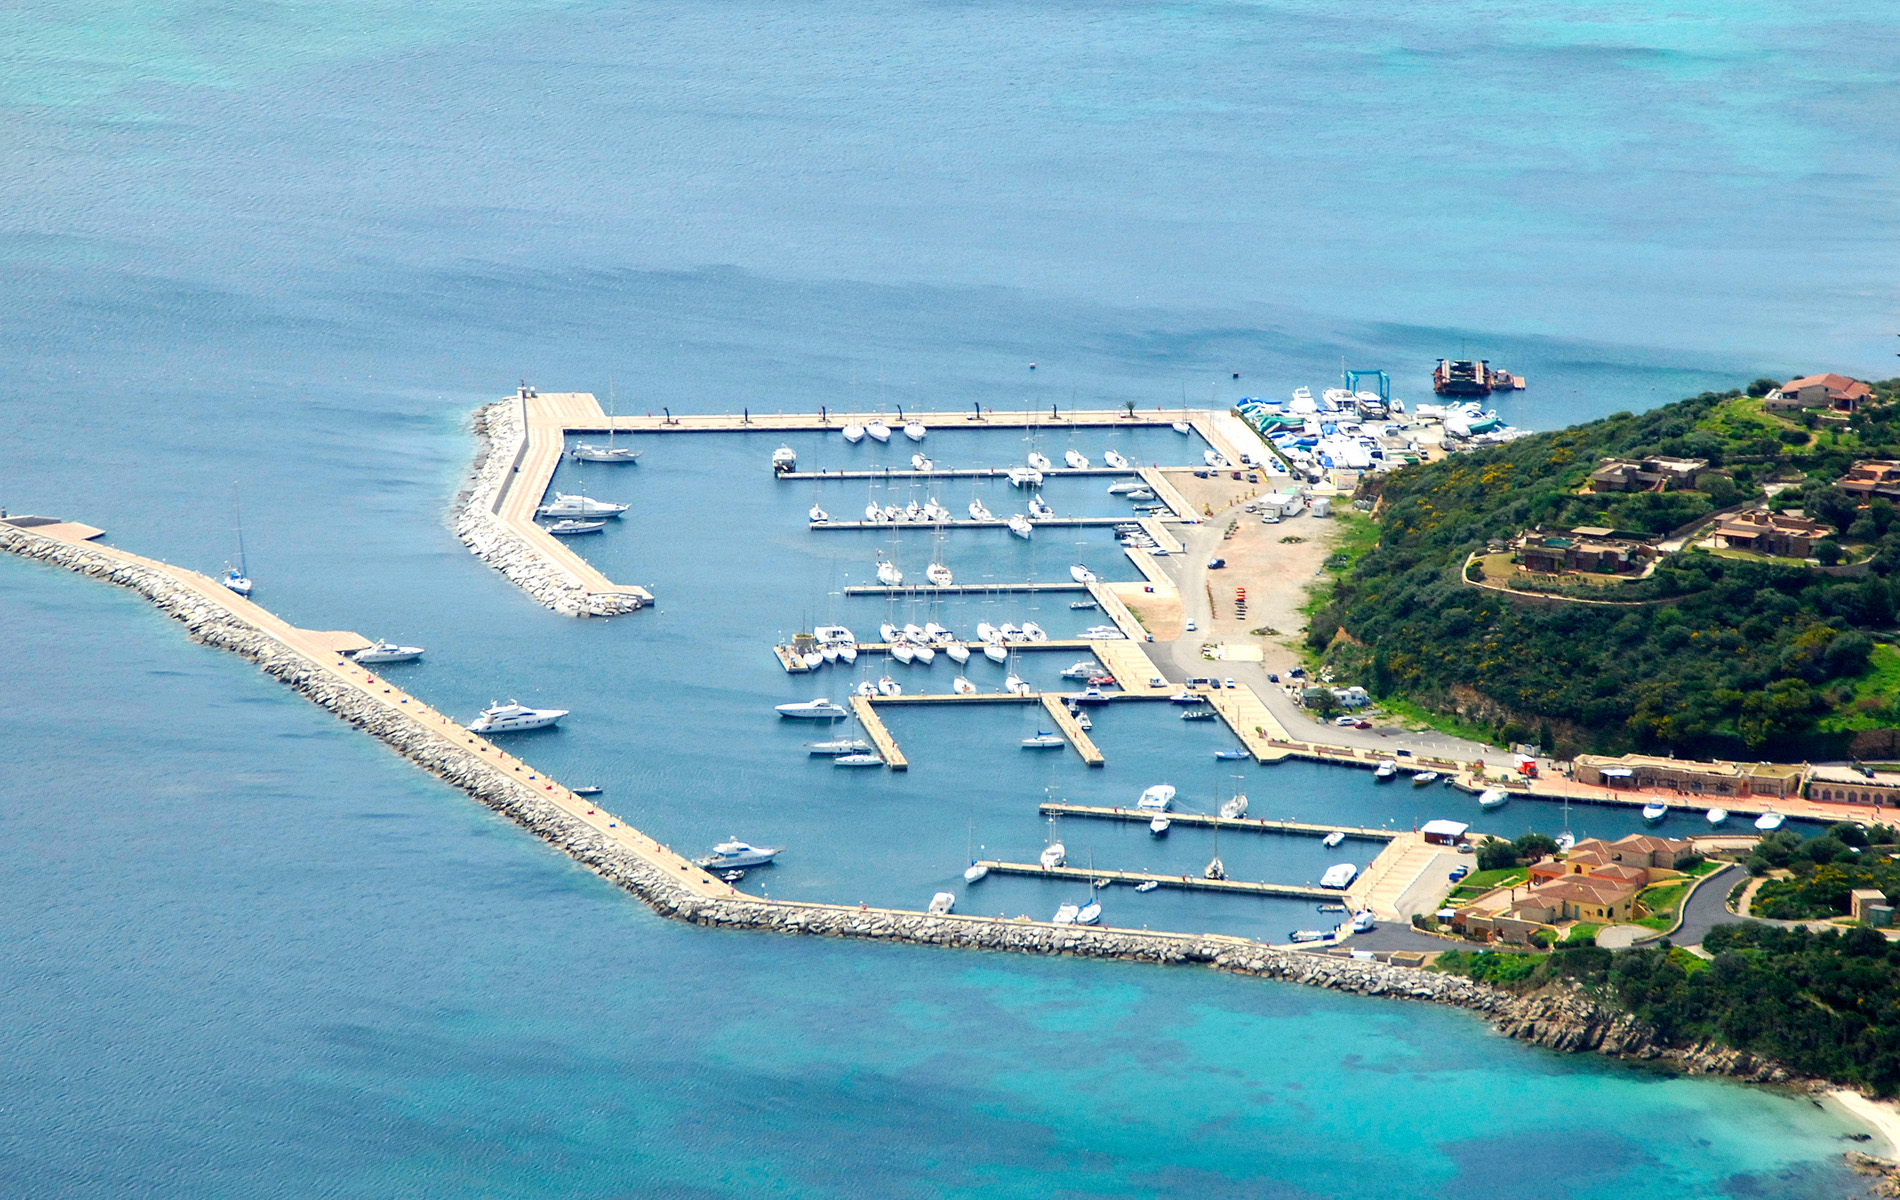 marina_di_portisco_online_booking_mooring_marina_rental_reservation